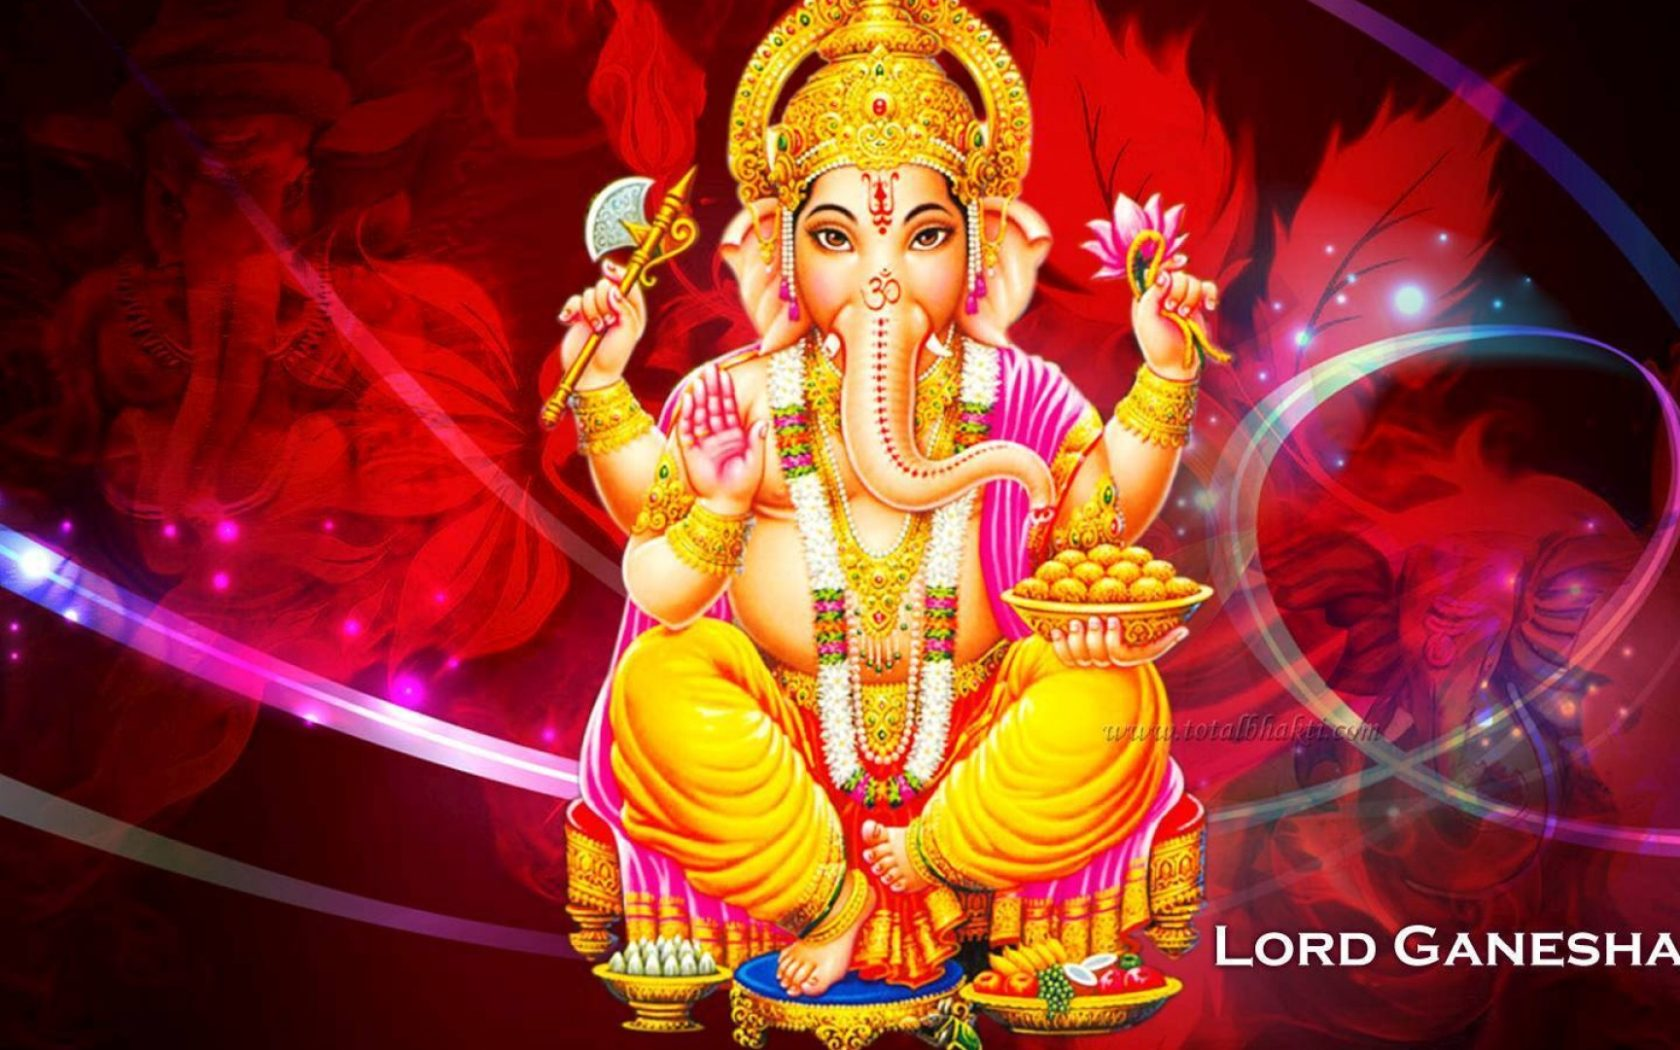 Lord Ganesha Quality Cool God Hd Wallpapers 1920x1080